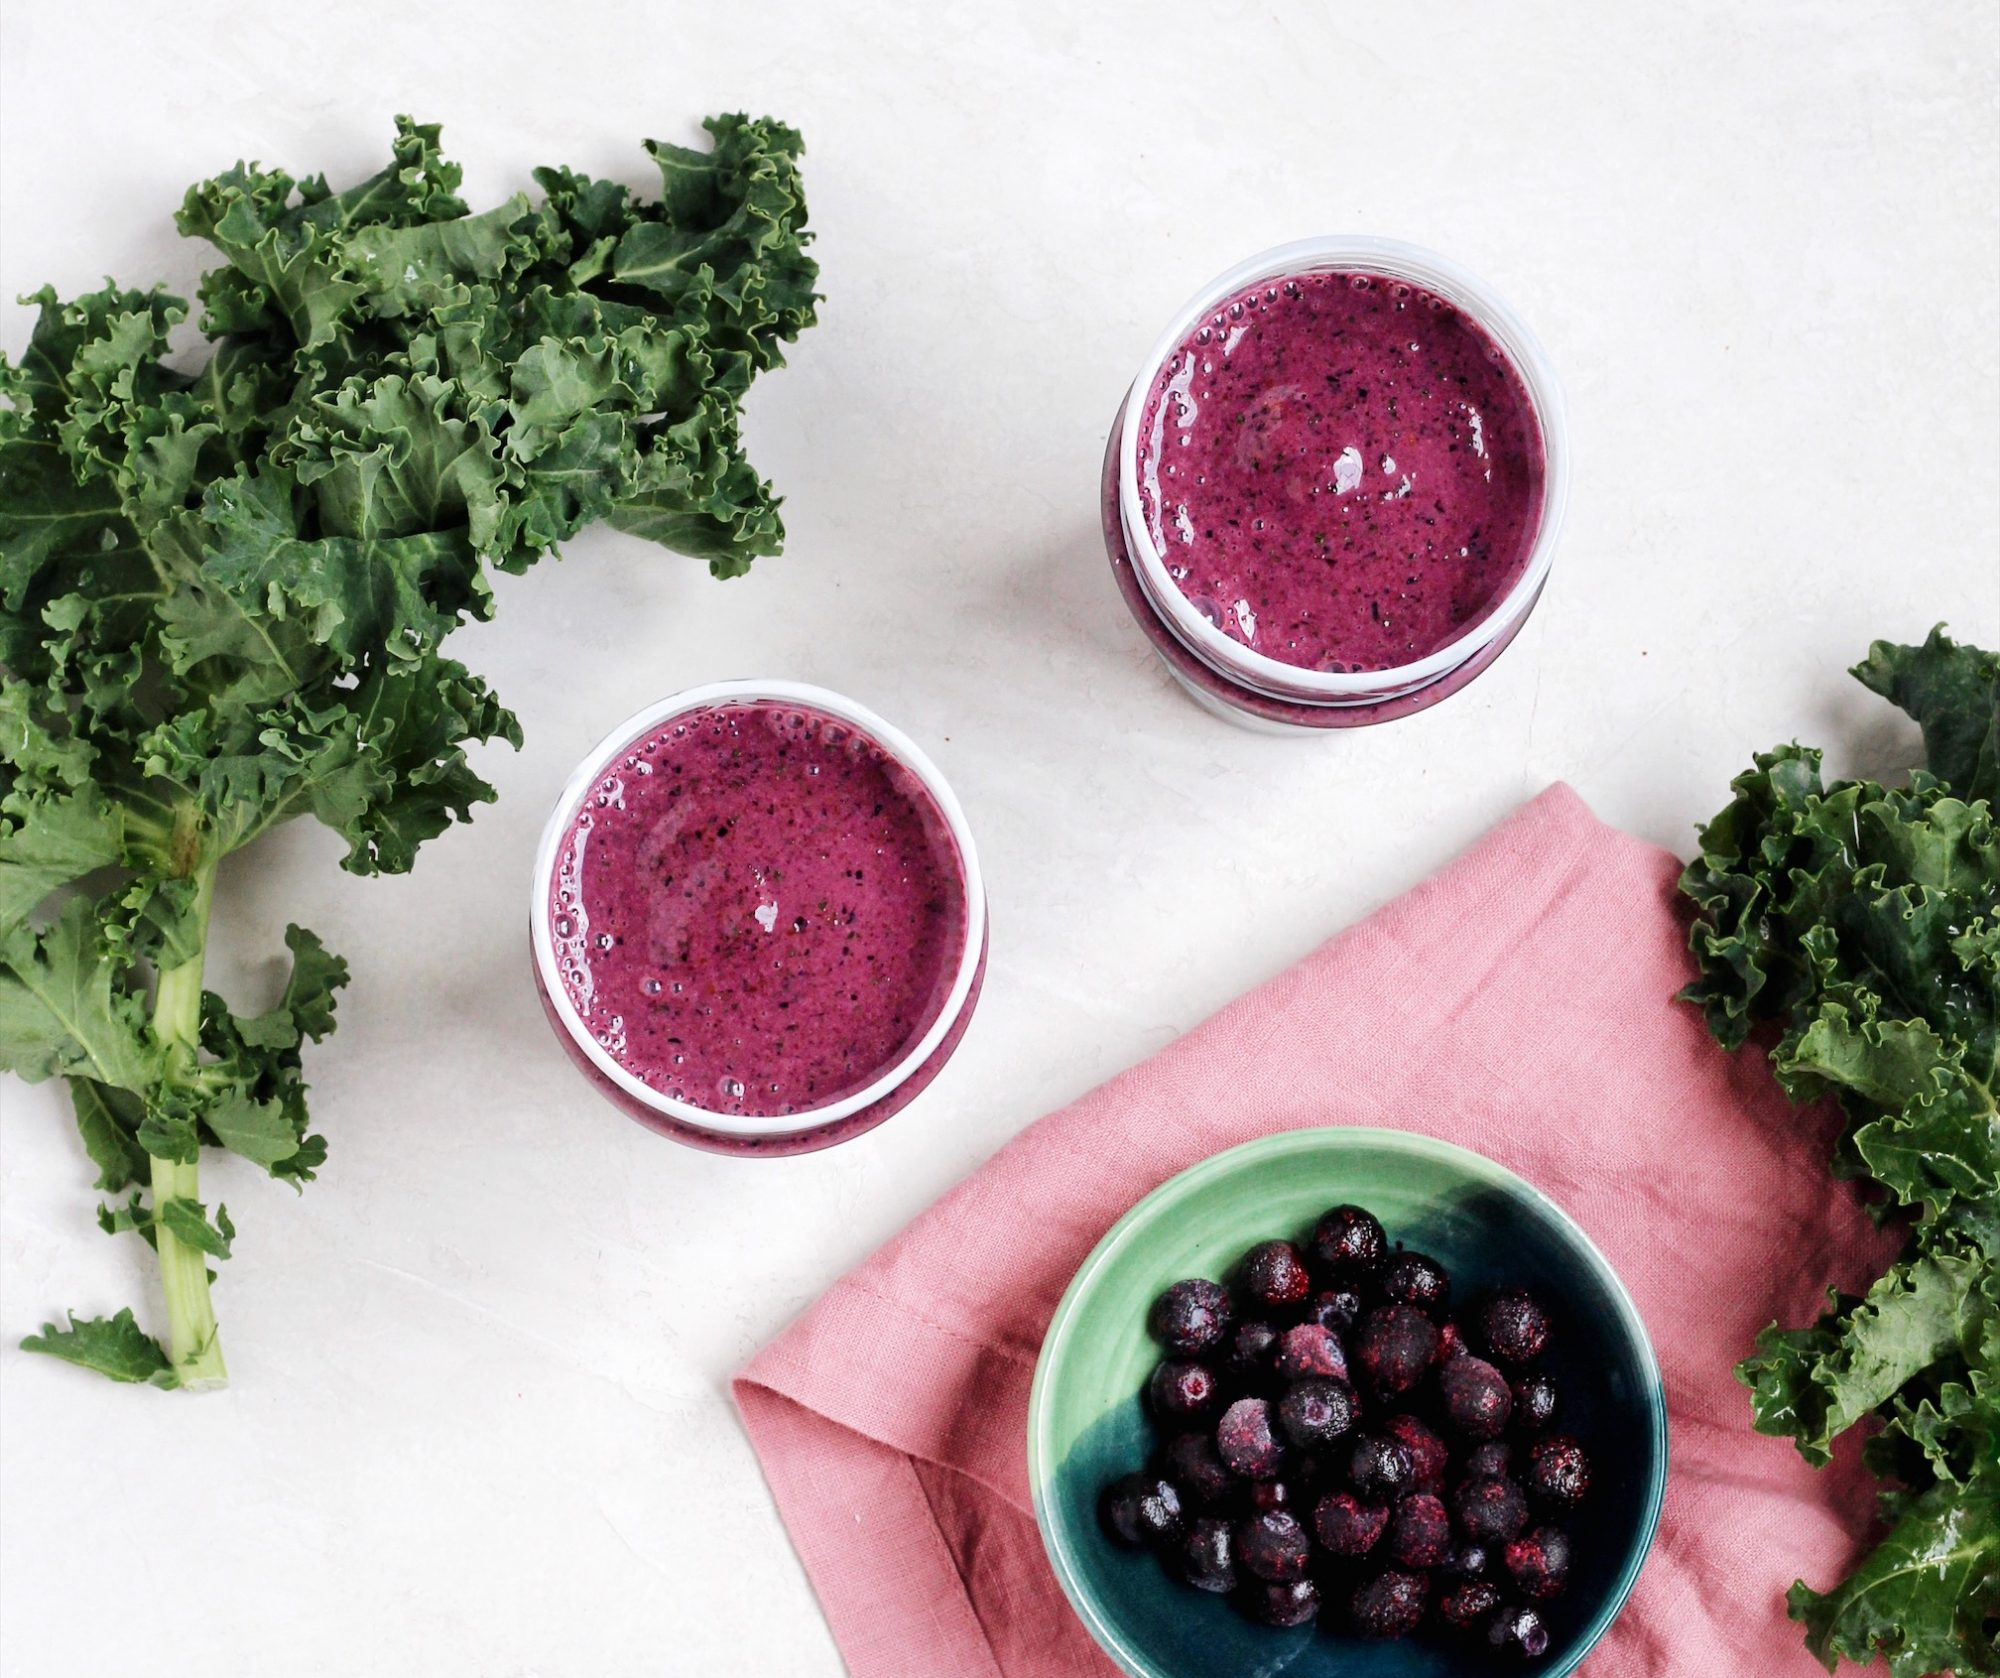 a Blueberry Kale Smoothie is a healthy way to start the day